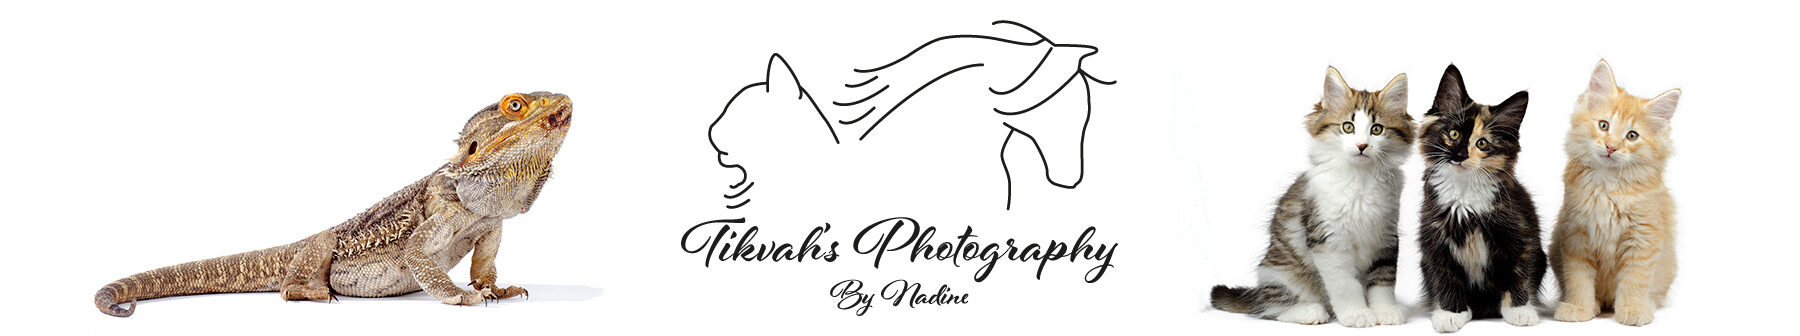 Tikvah's Photography